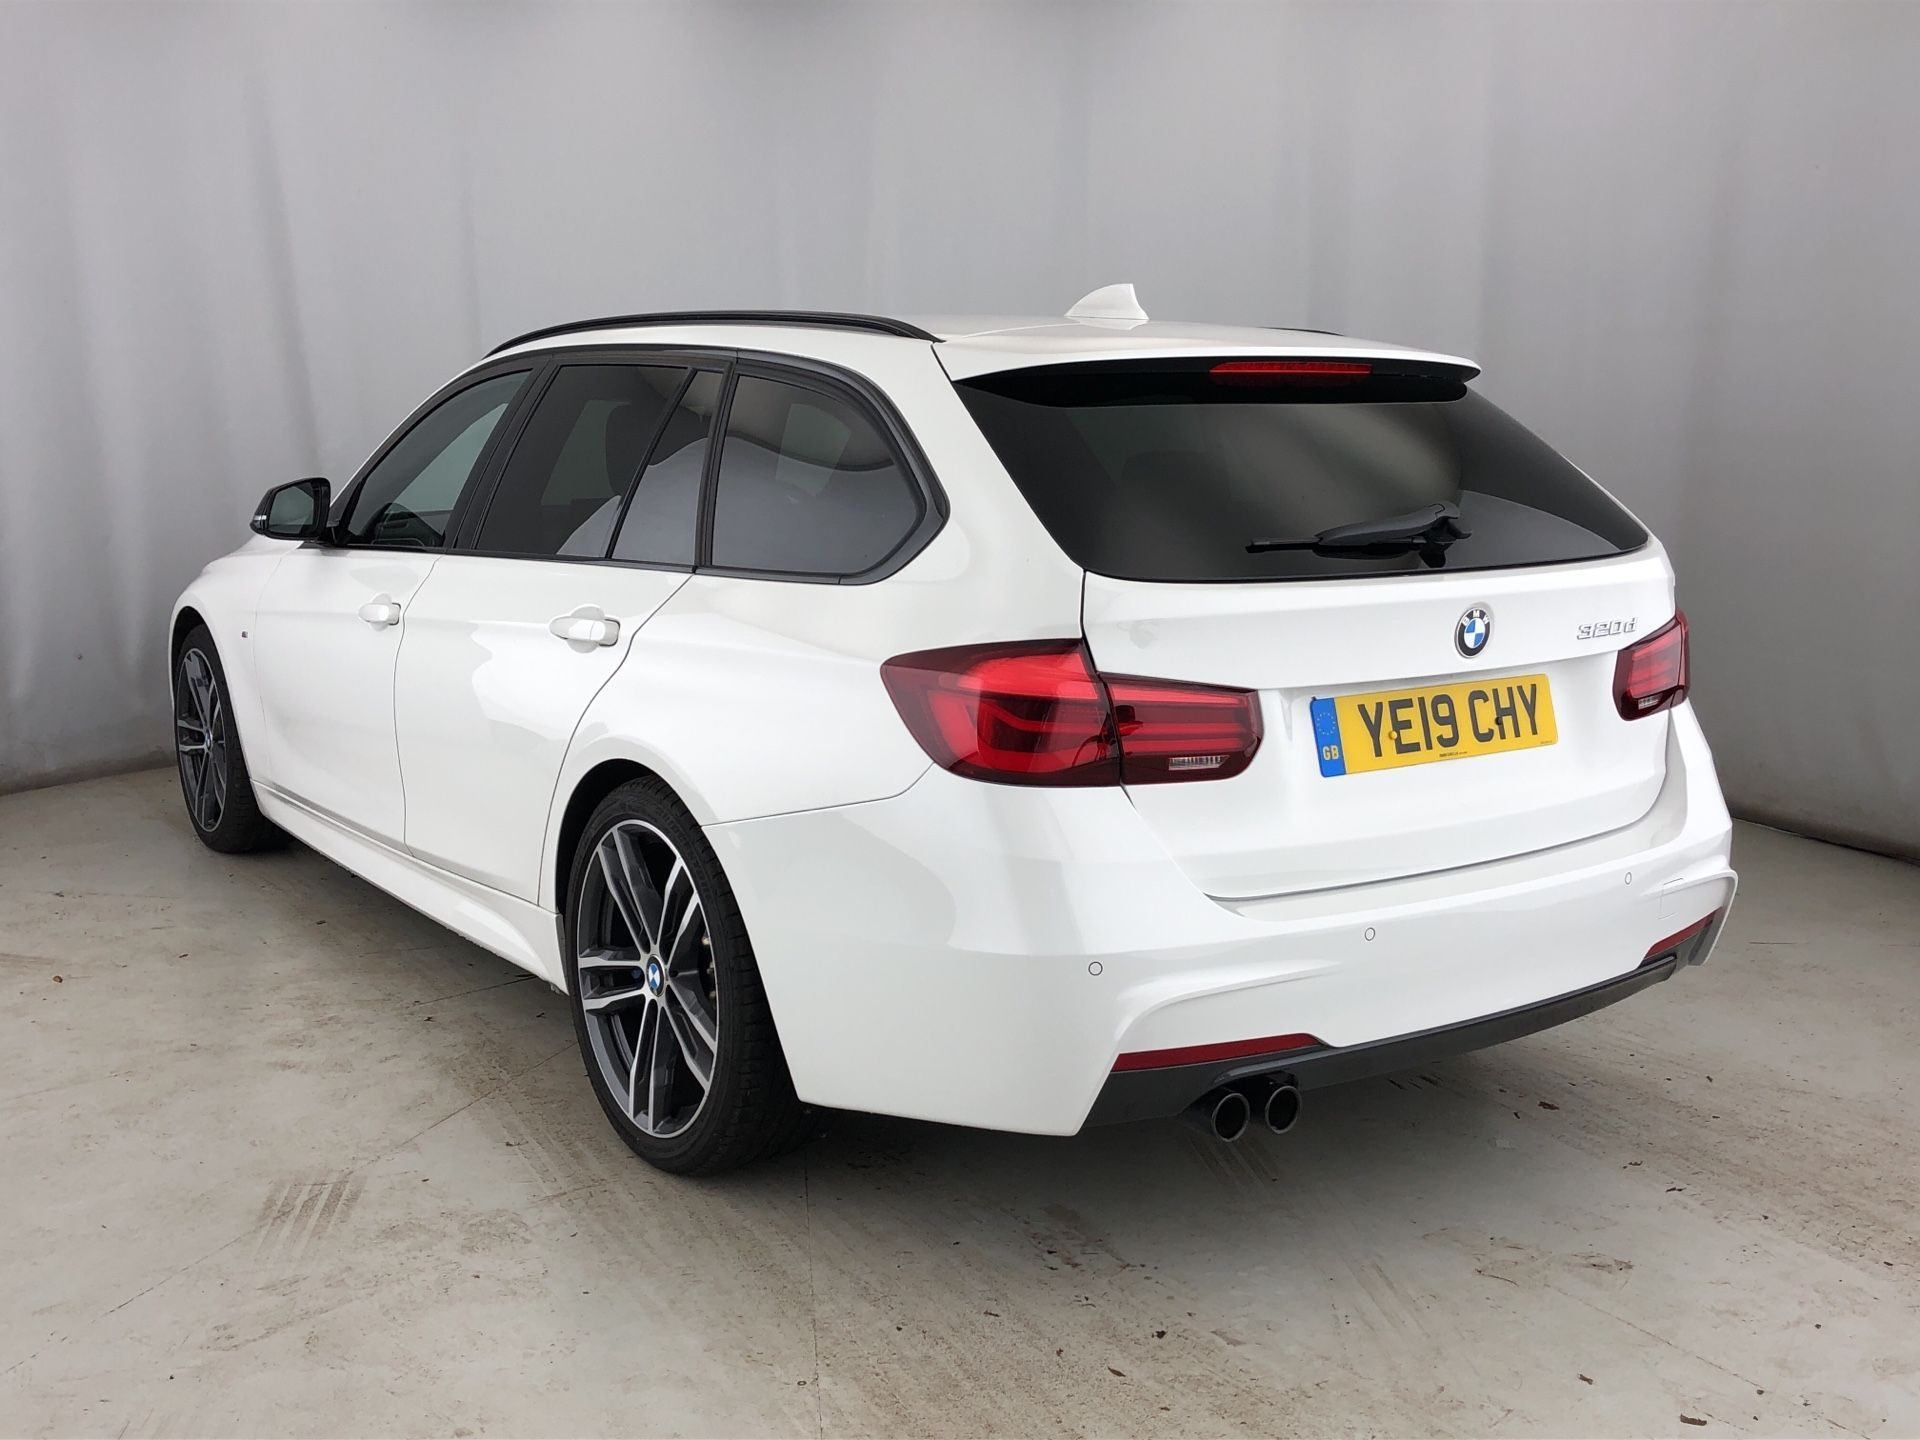 Image 2 - BMW 320d M Sport Shadow Edition Touring (YE19CHY)